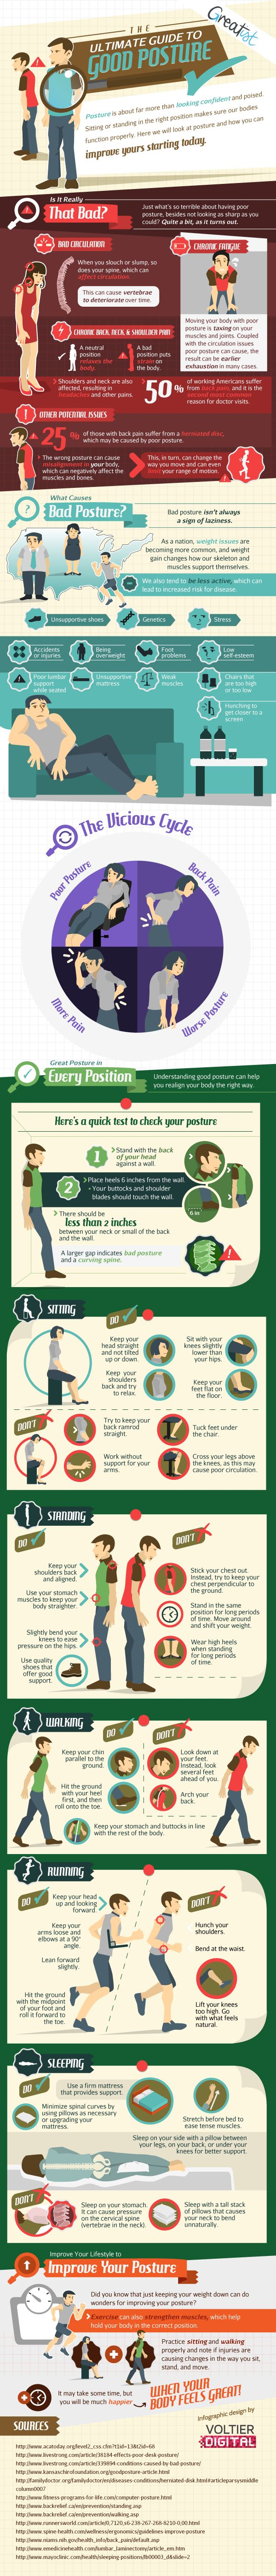 Does your mother still tell you to stop slouching and stand up straight? Take a look at this infographic for some pointers to improve your posture.